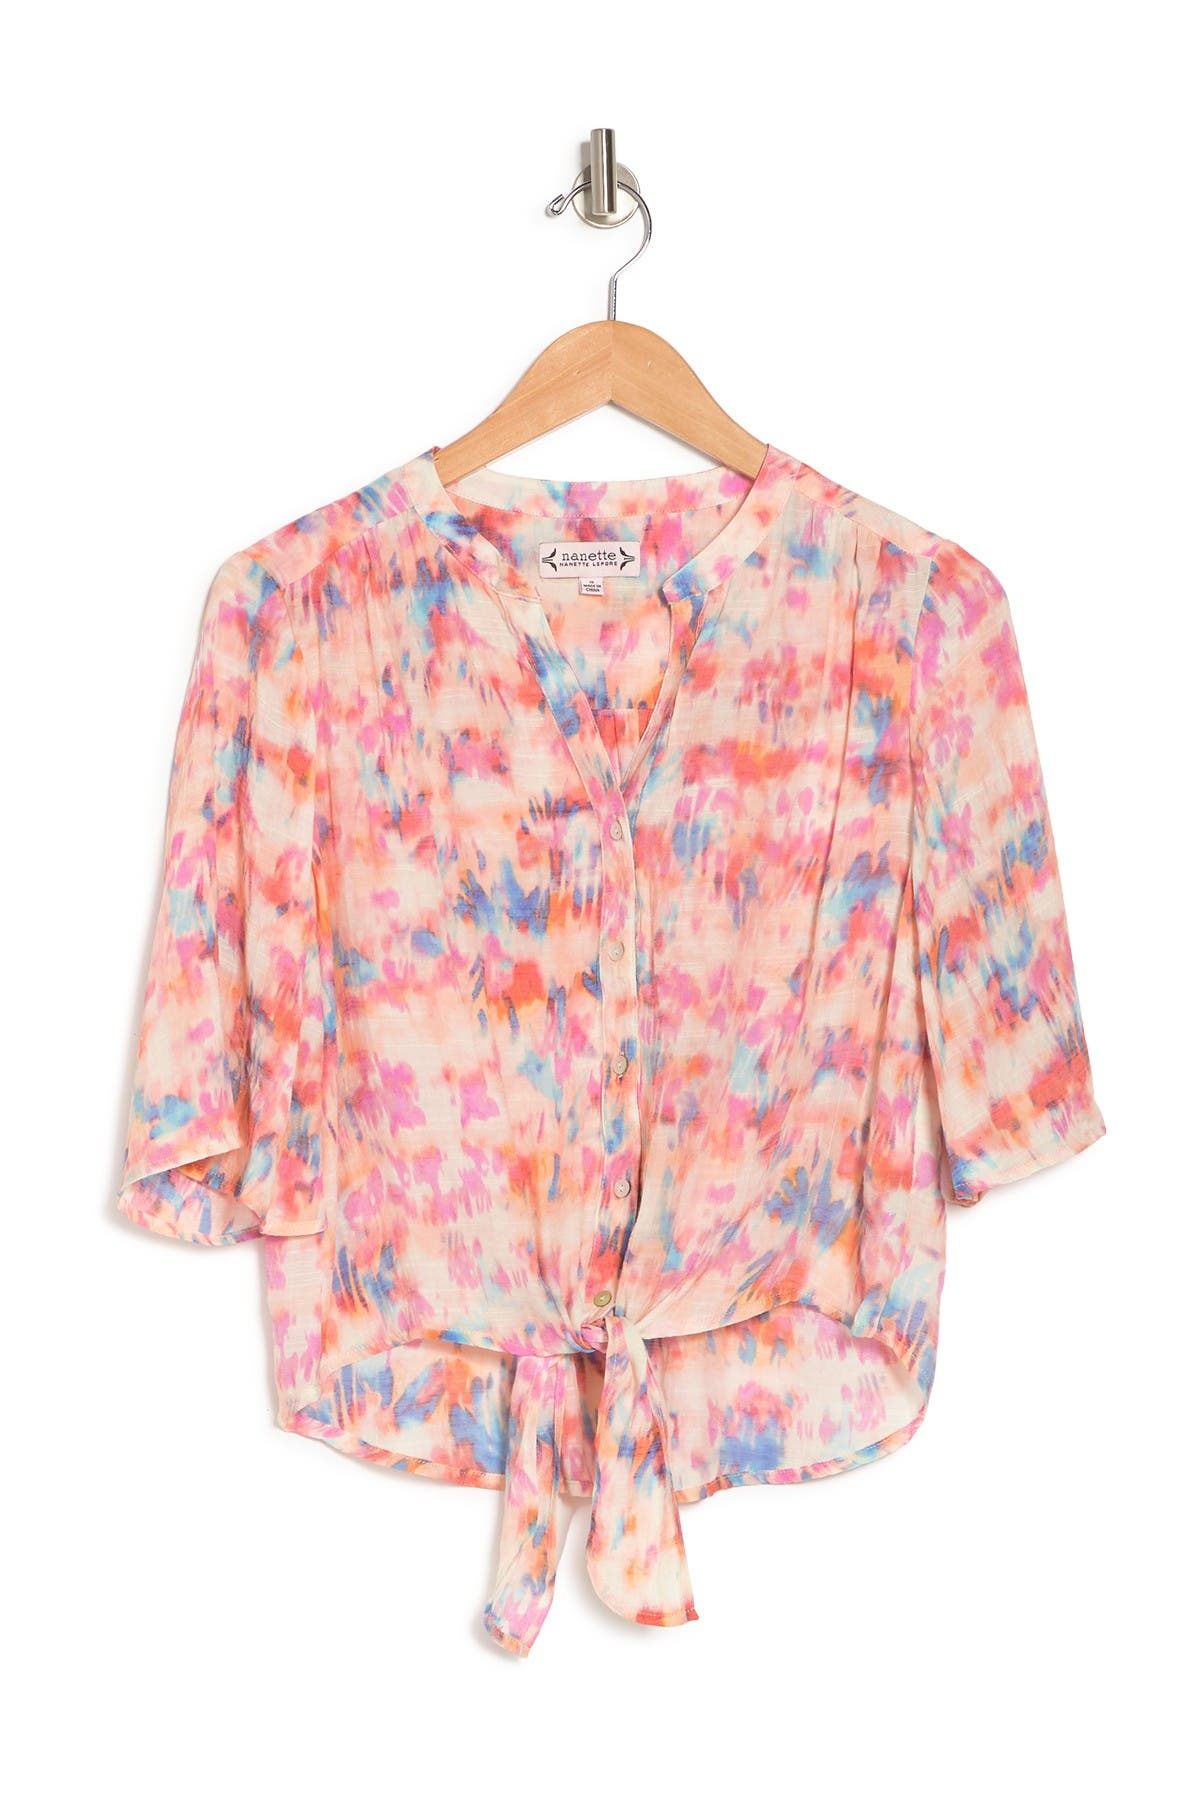 Image of NANETTE nanette lepore 3/4 Sleeve Tie Front Blouse